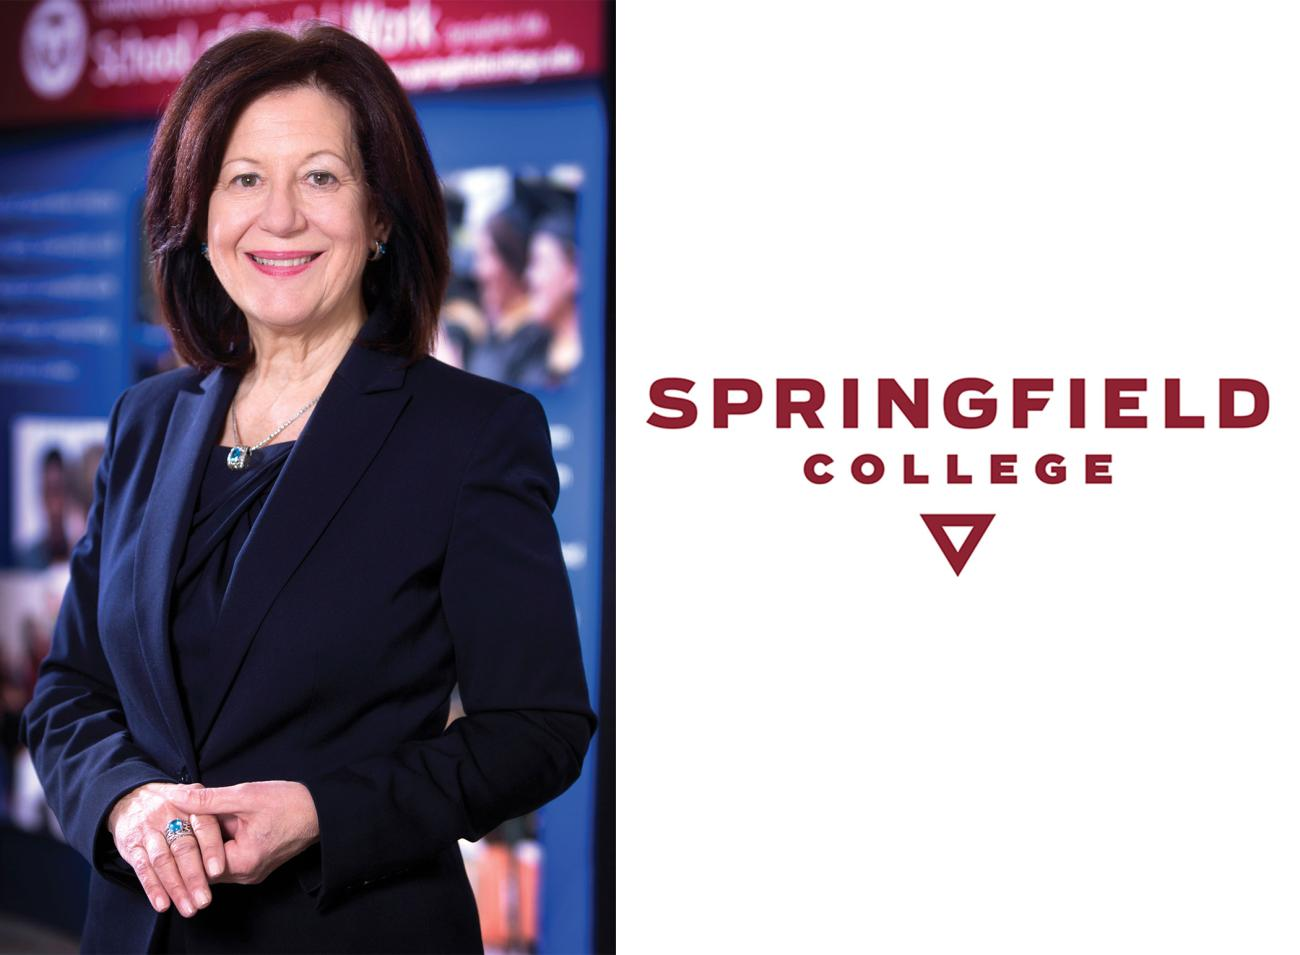 Dean of the Springfield College School of Social Work Dr. Francine Vecchiolla has been re-appointed to a three-year term on the Commission on Educational Policy (COEP) of the Council on Social Work Education (CSWE), by Dr. Barbara Shank, Chair of the CSWE Board of Directors.